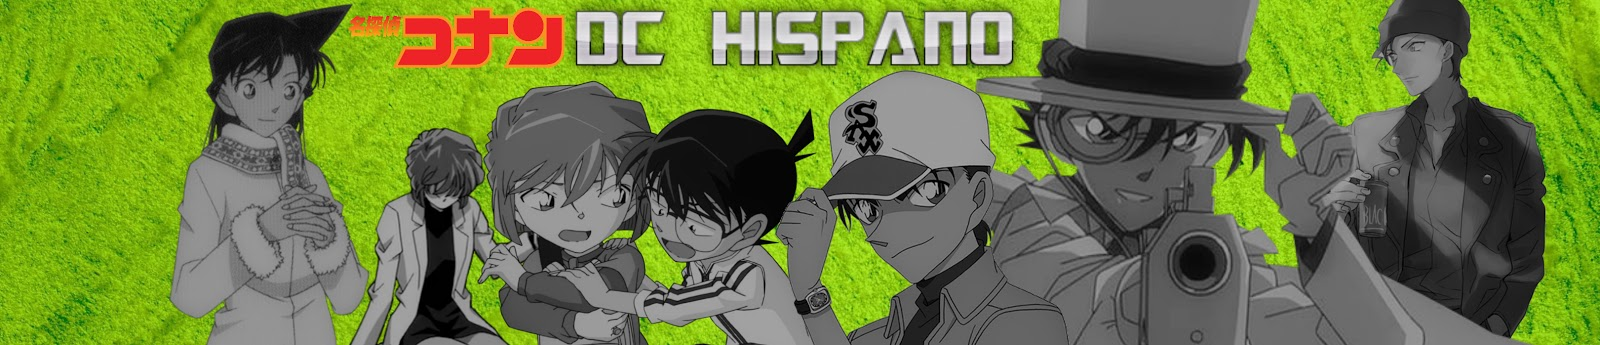 DC Hispano